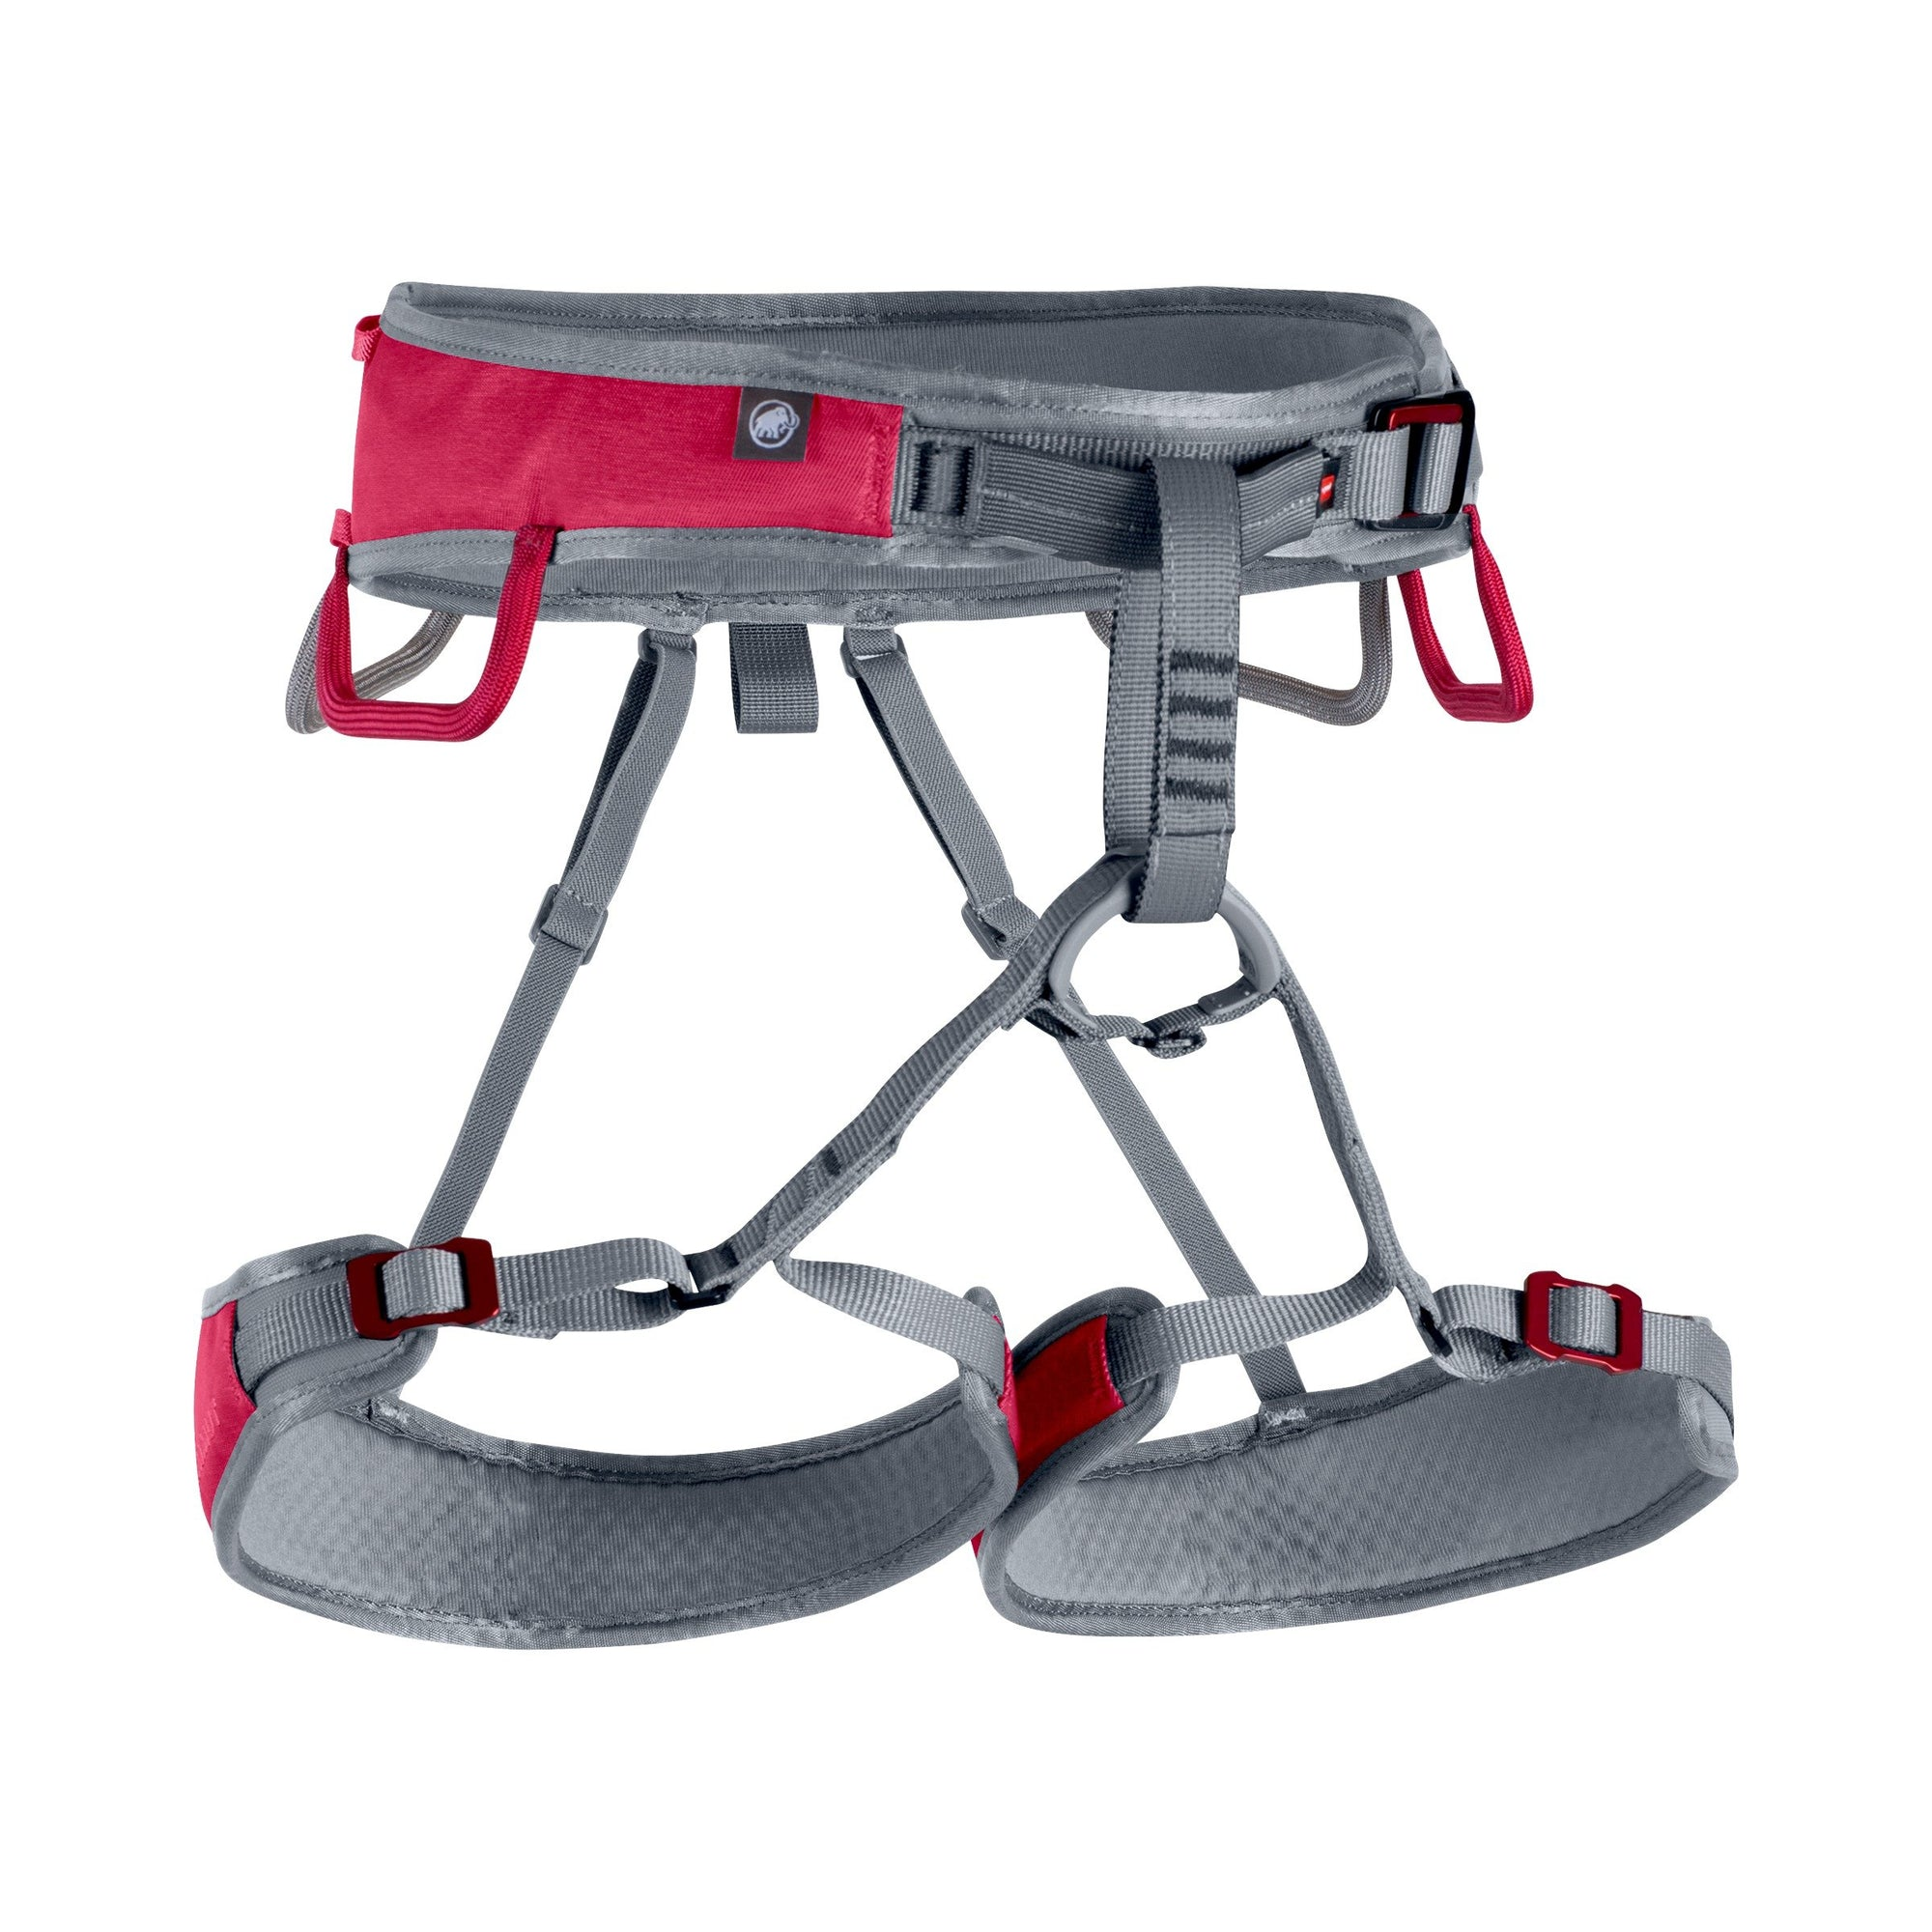 Mammut Ophir Fast Adjust Womens climbign harness, front/side view in grey and red colours